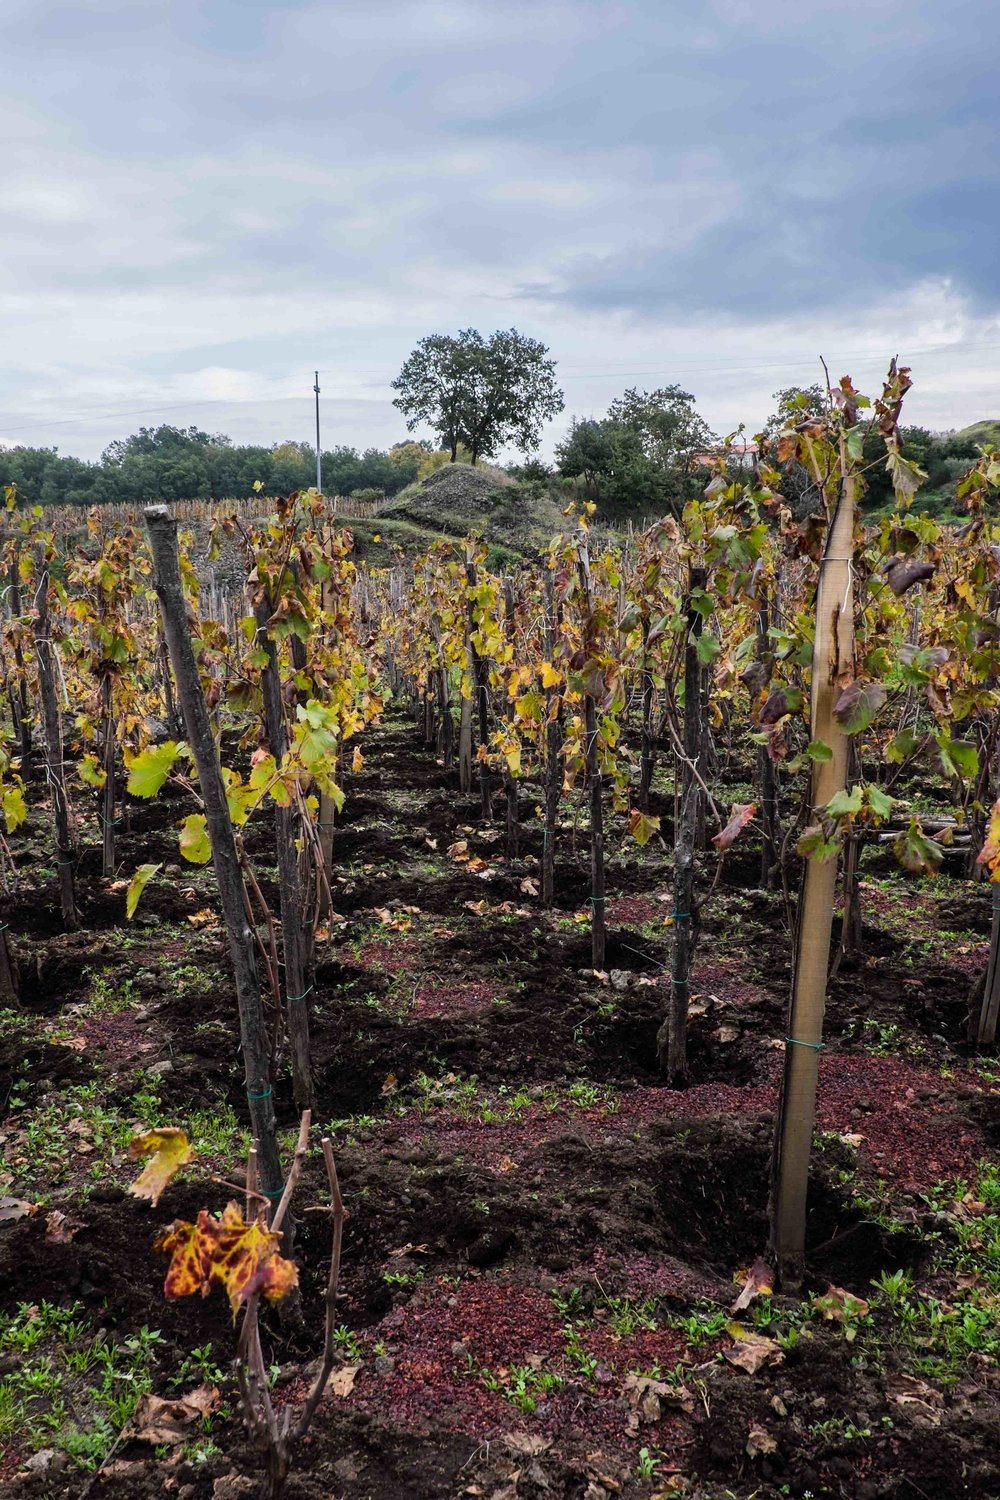 'Albarello Etneo': chestnut stake-trained old vines on Mt. Etna |  ©John Szabo (published by Jacqui Small)